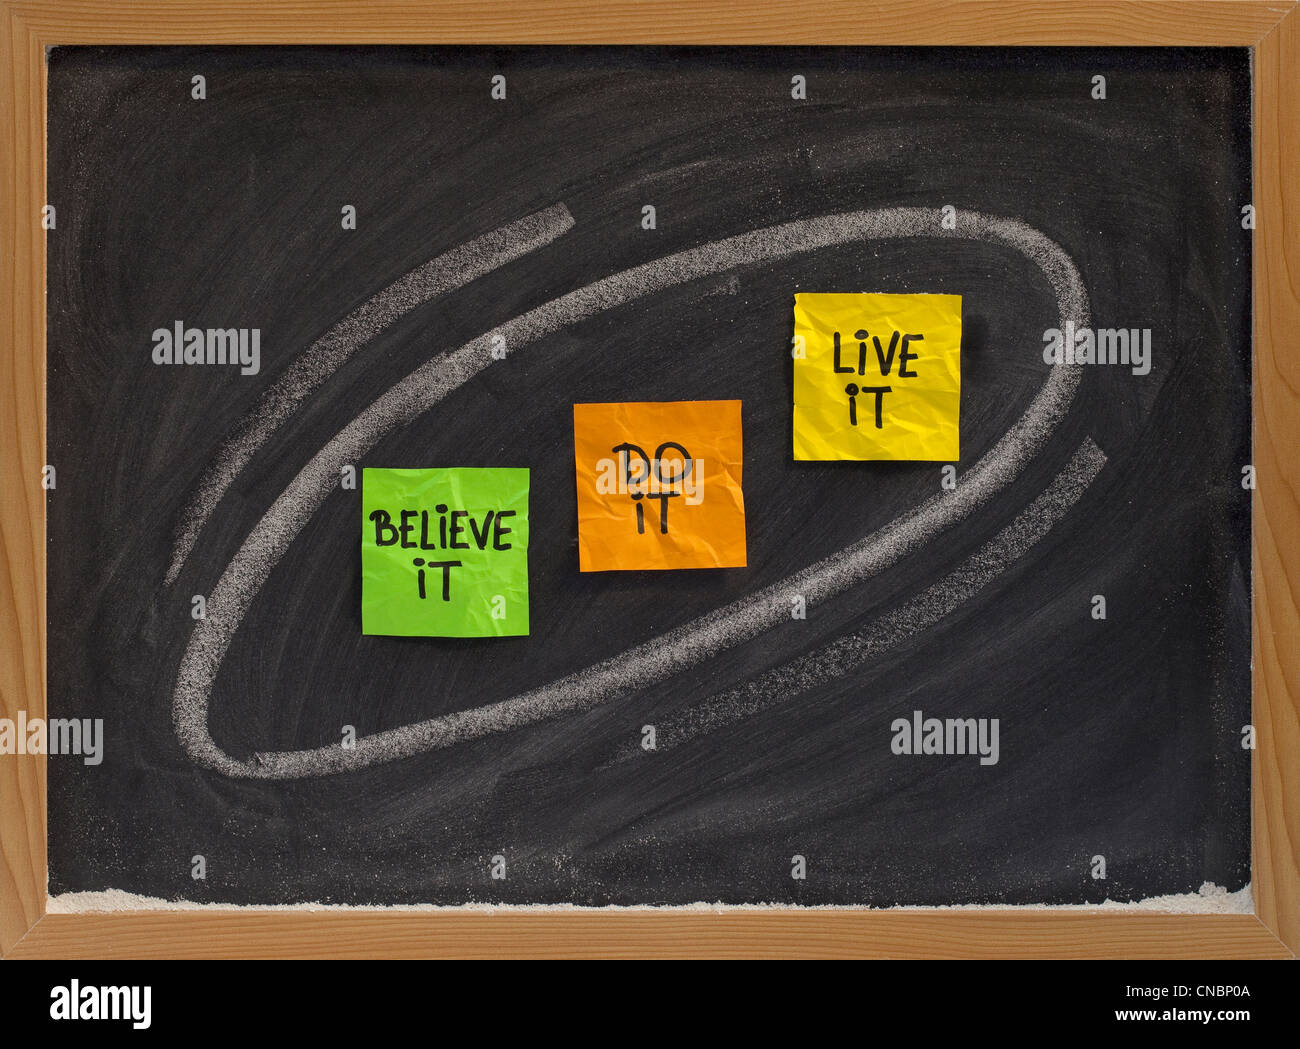 believe it, do it, live it - motivational concept on blackboard, color sticky notes and white chalk drawing - Stock Image